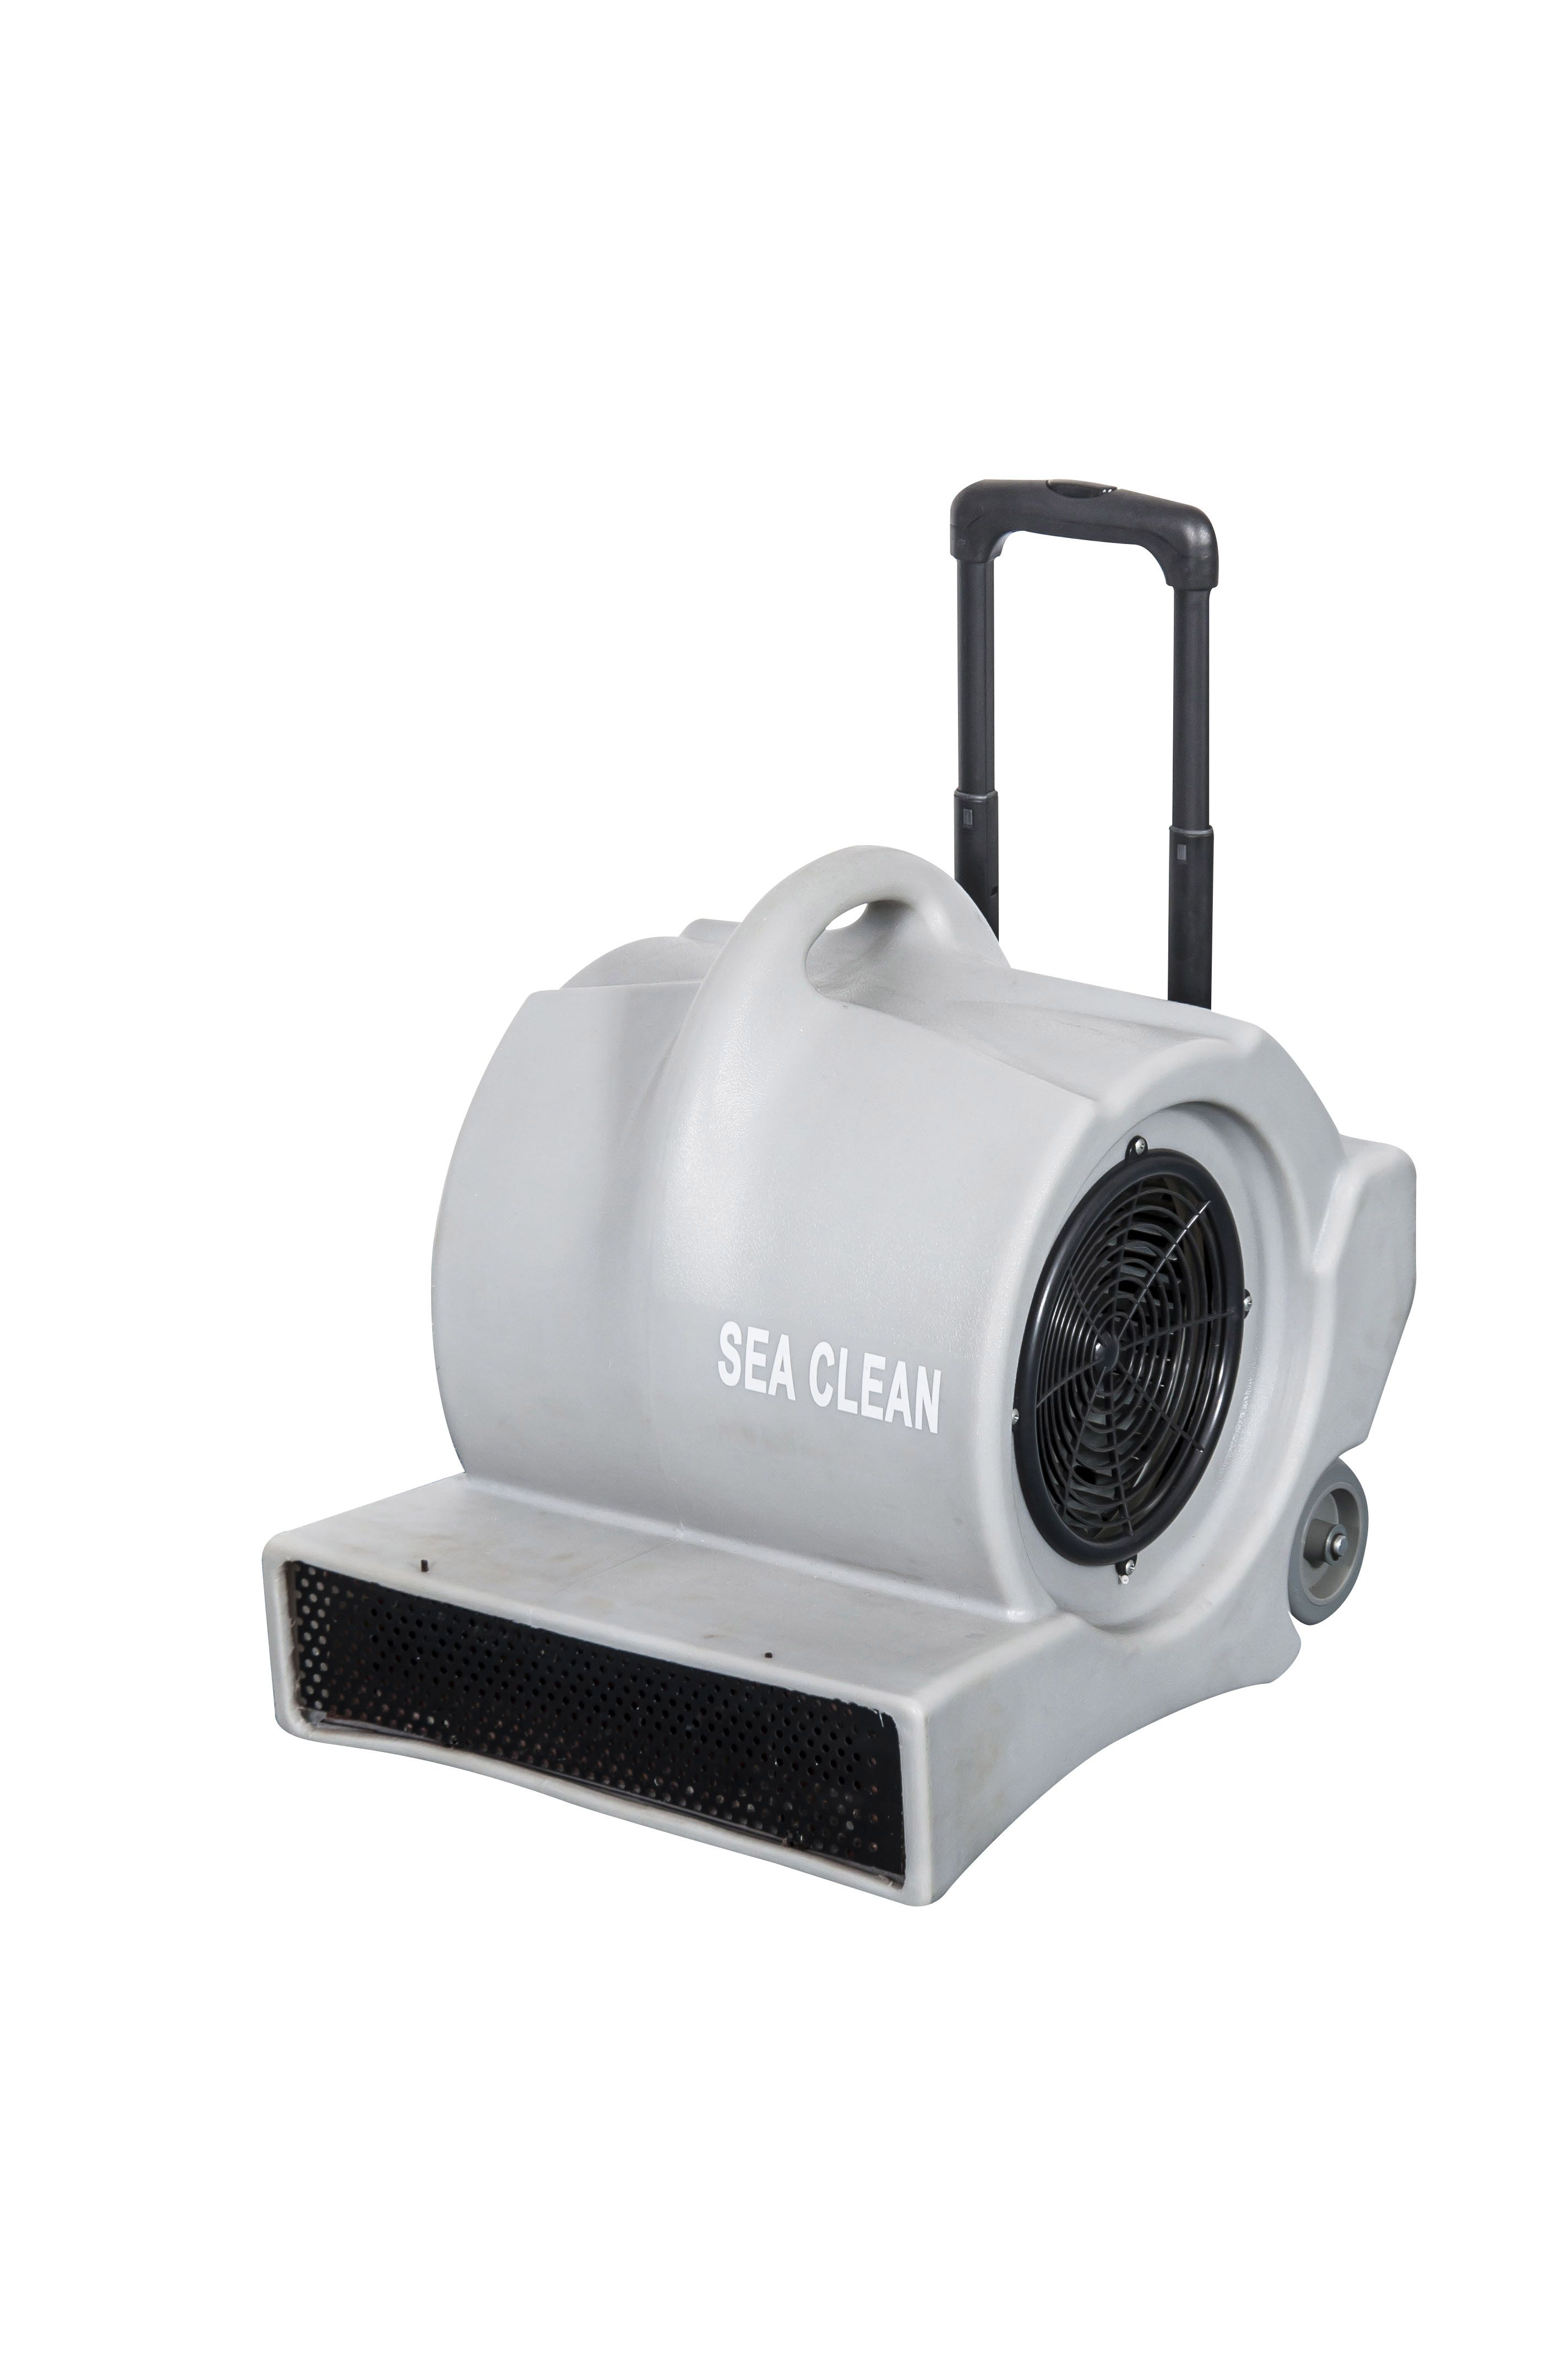 Hot air blower, the excelent choice for wet environment